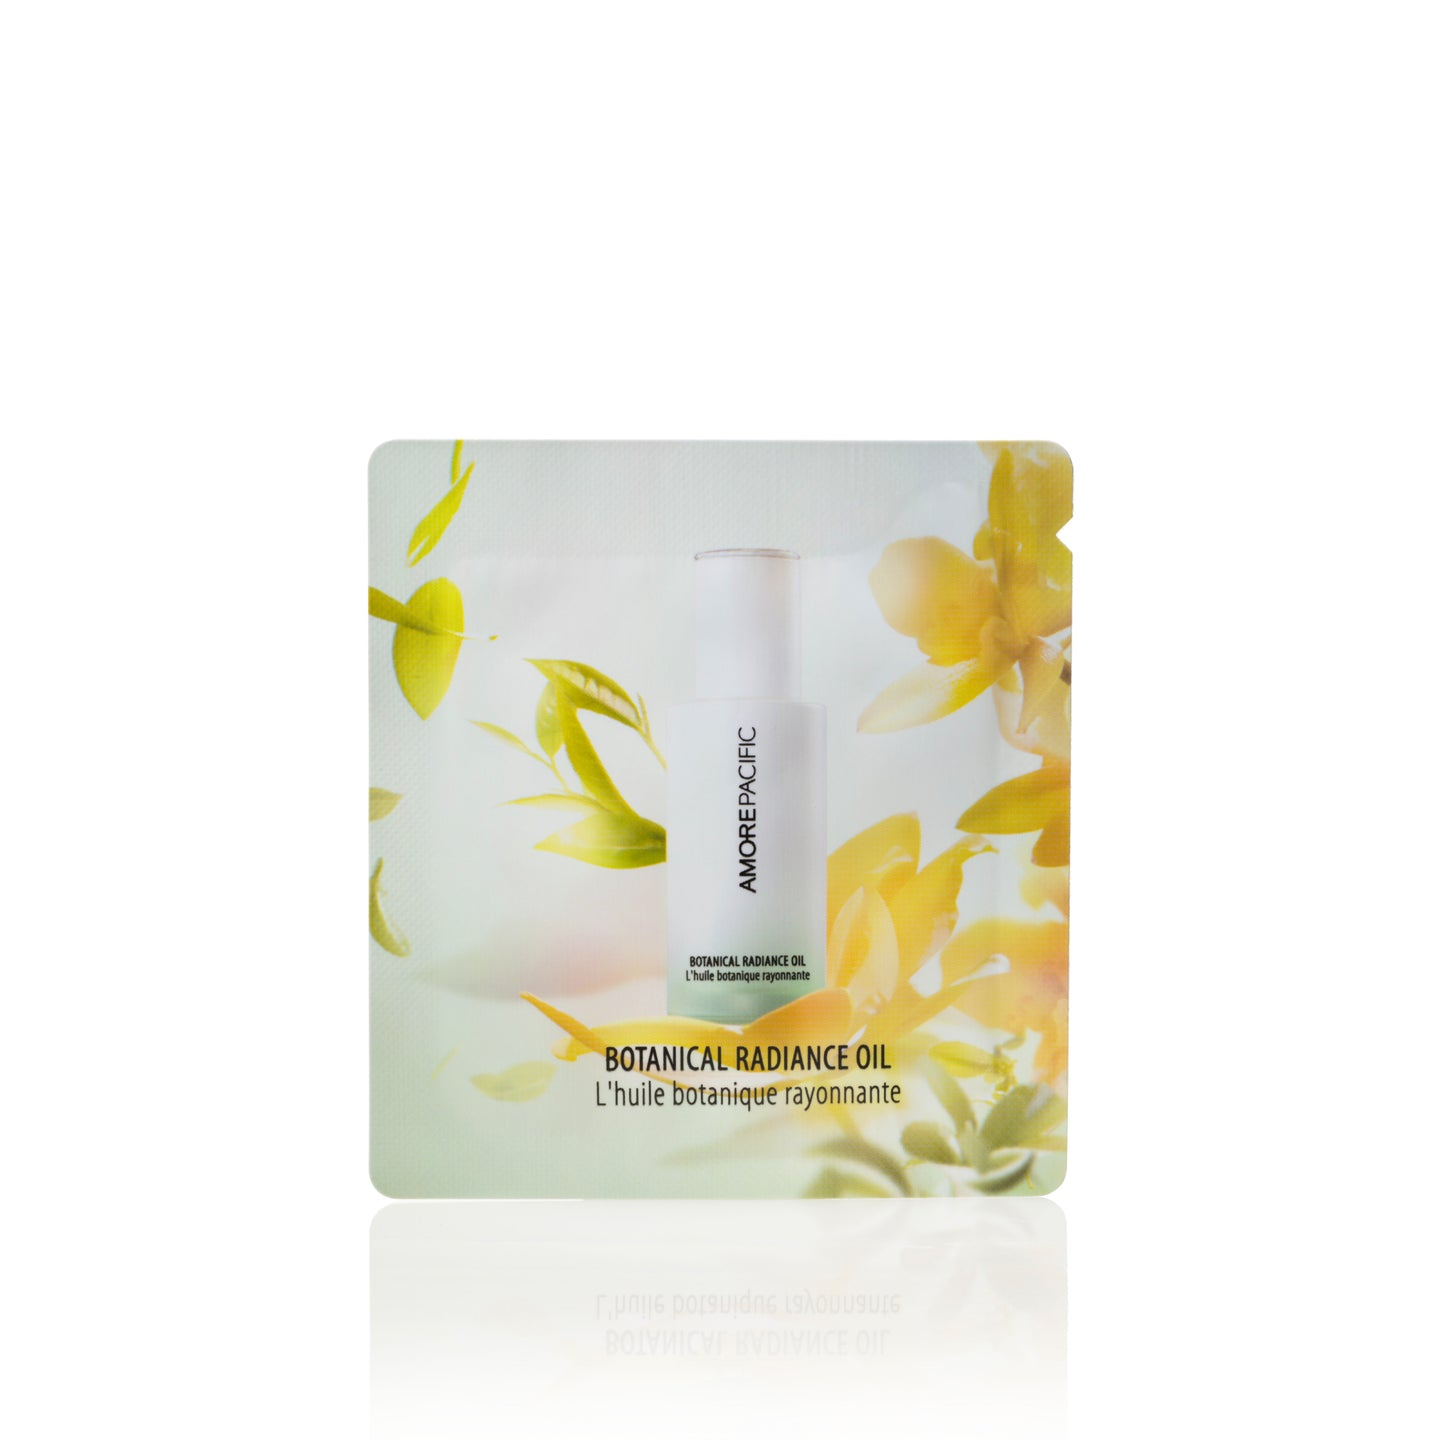 Botanical Radiance Oil 1ml